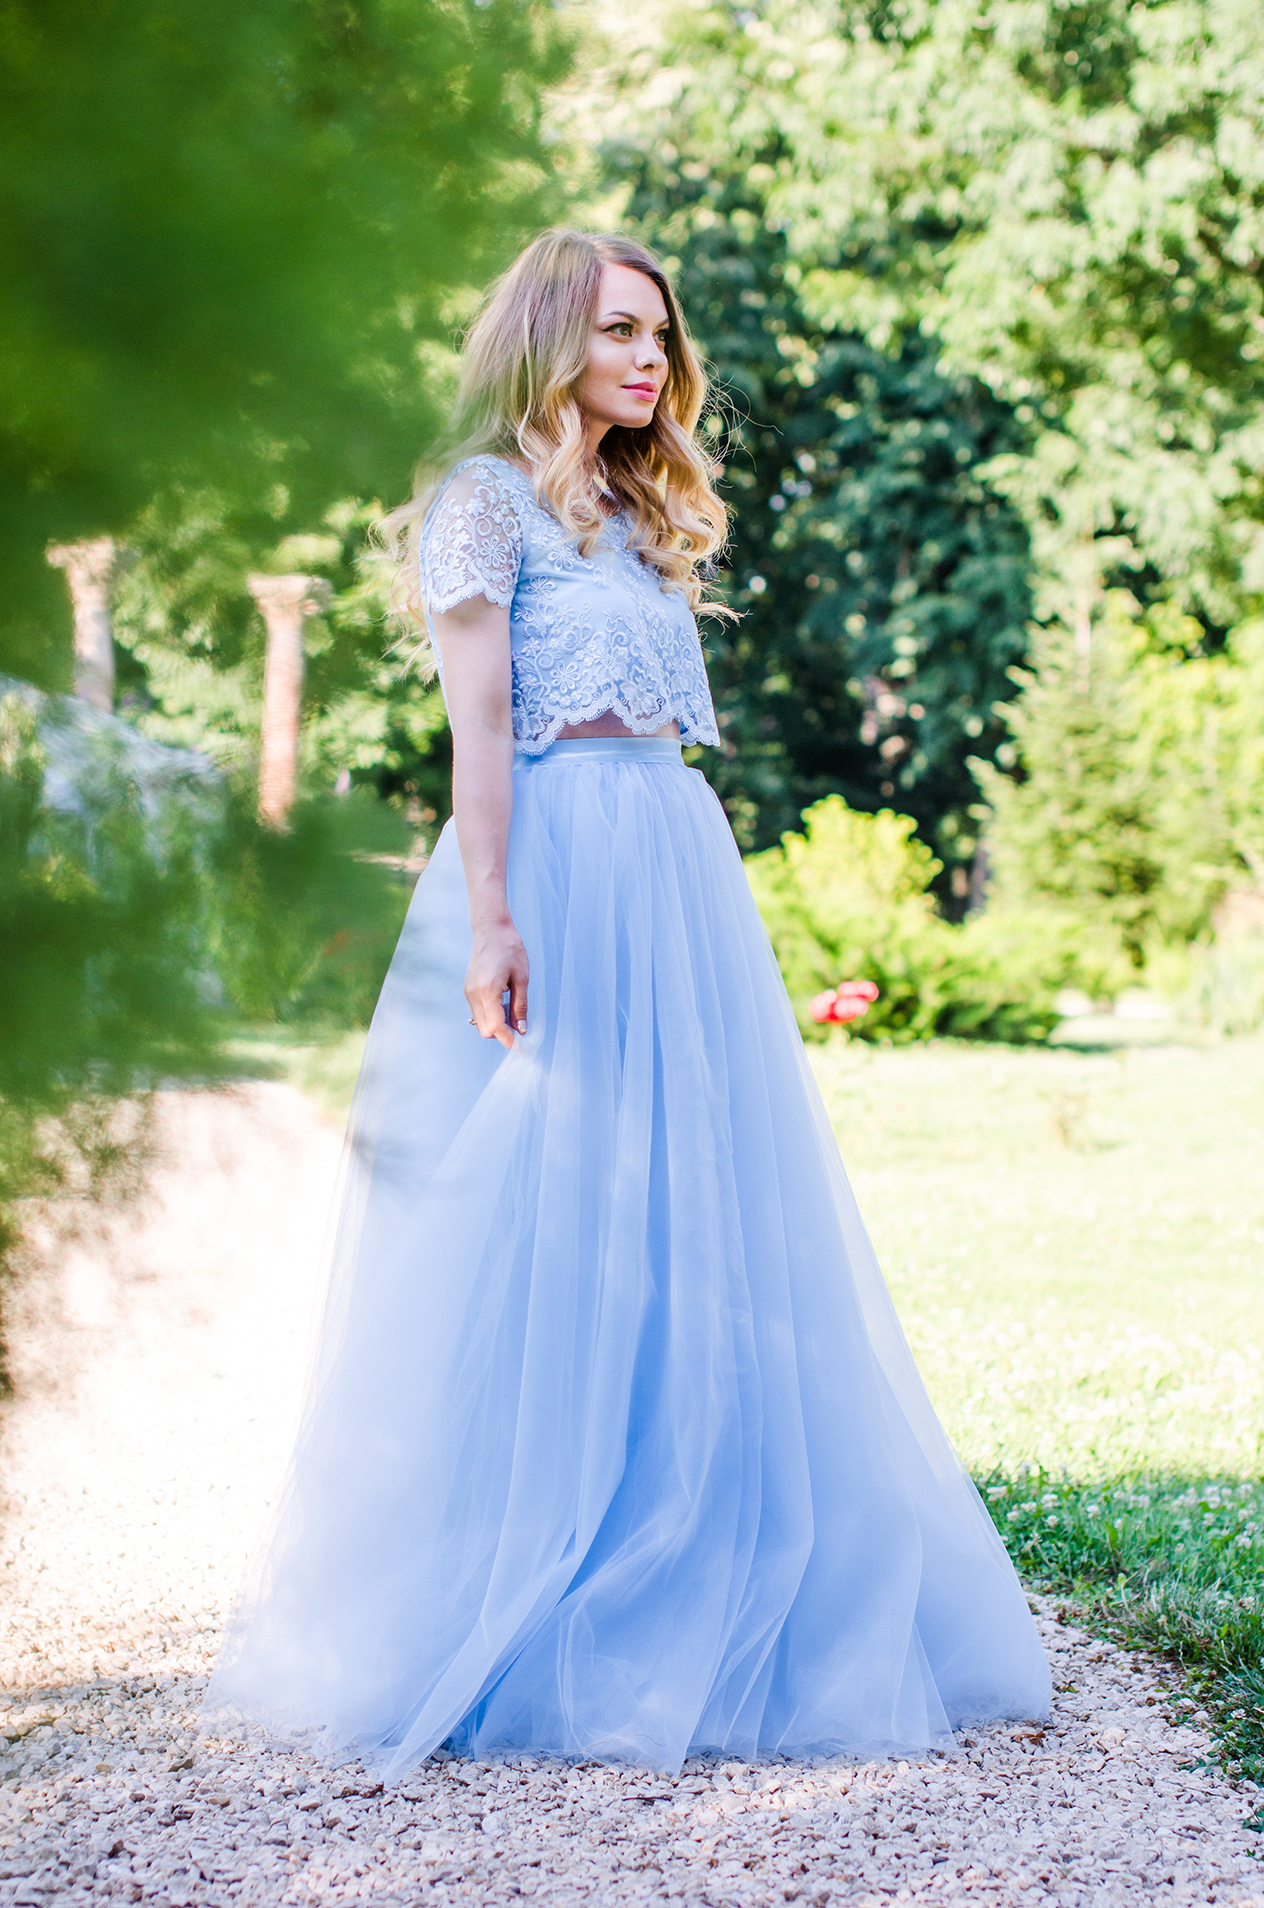 pink-wish-collection-blue-tulle-skirt-lace-top-wedding-princess-dress (16)